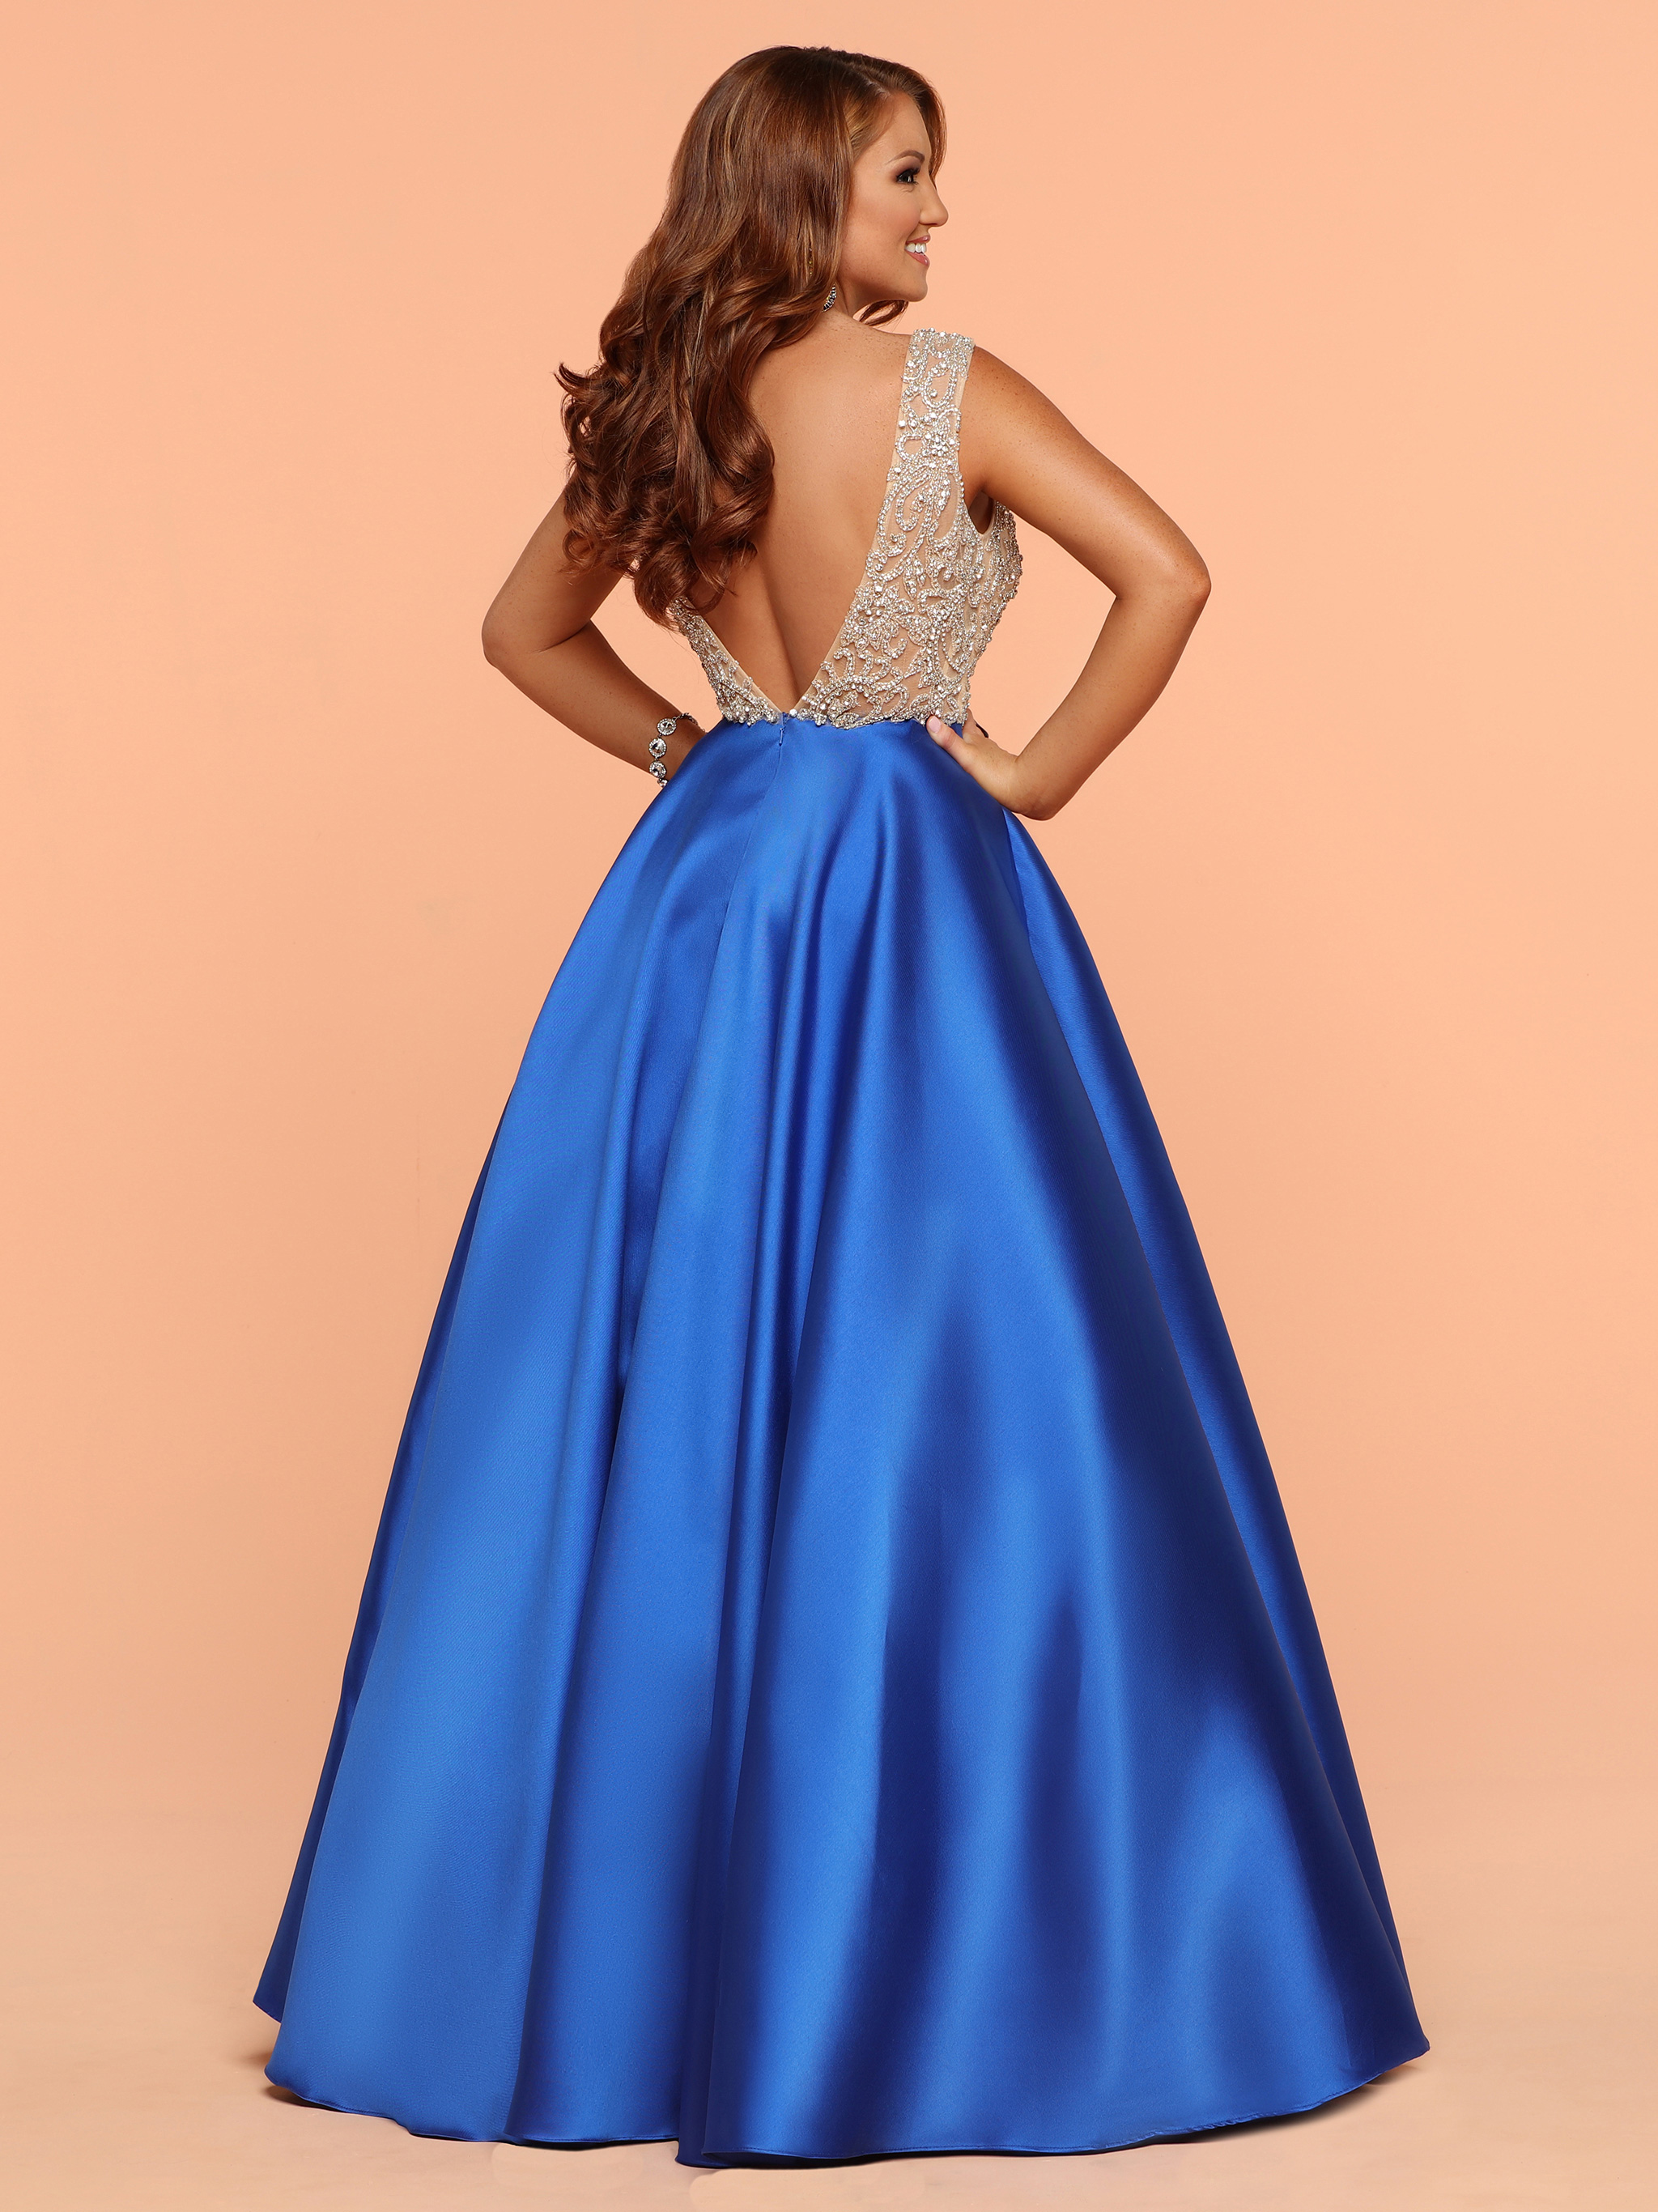 Image showing back view of style #71846